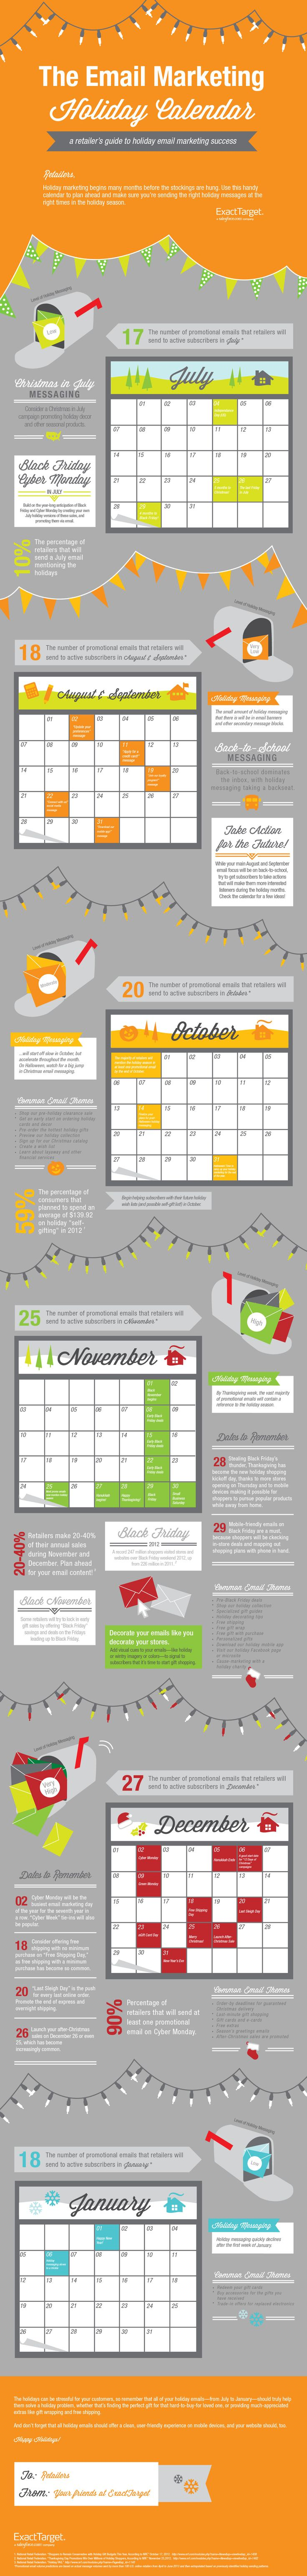 If you are a retailer who is planning a holiday email marketing campaign, this infographic can help. It lays out an optimal marketing schedule and calendar.